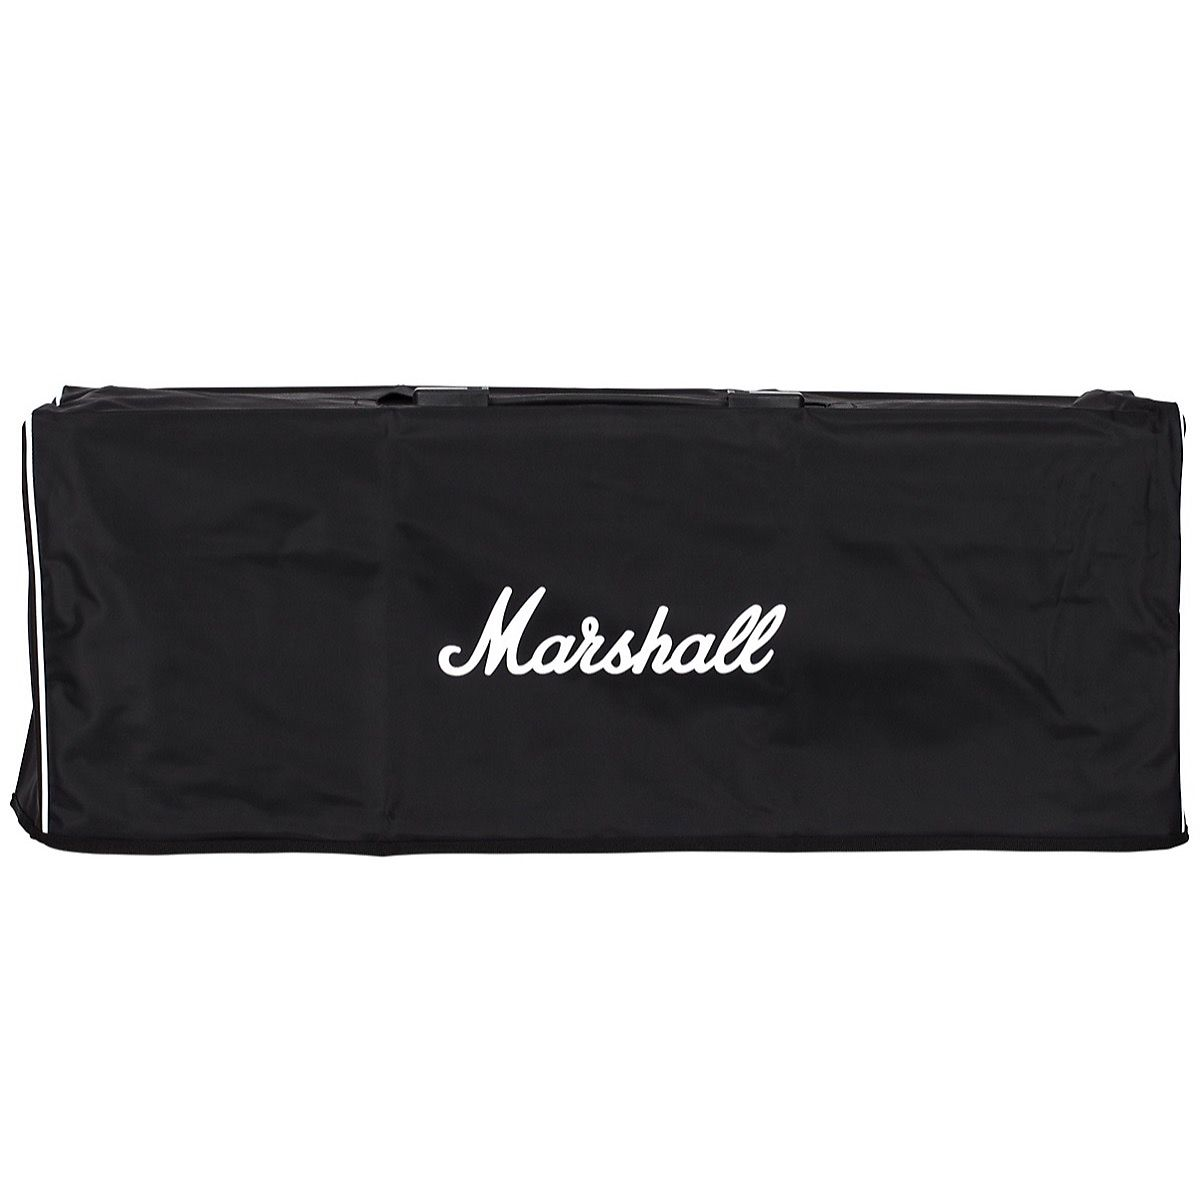 Marshall Amp Cover for Full Size Tube Heads